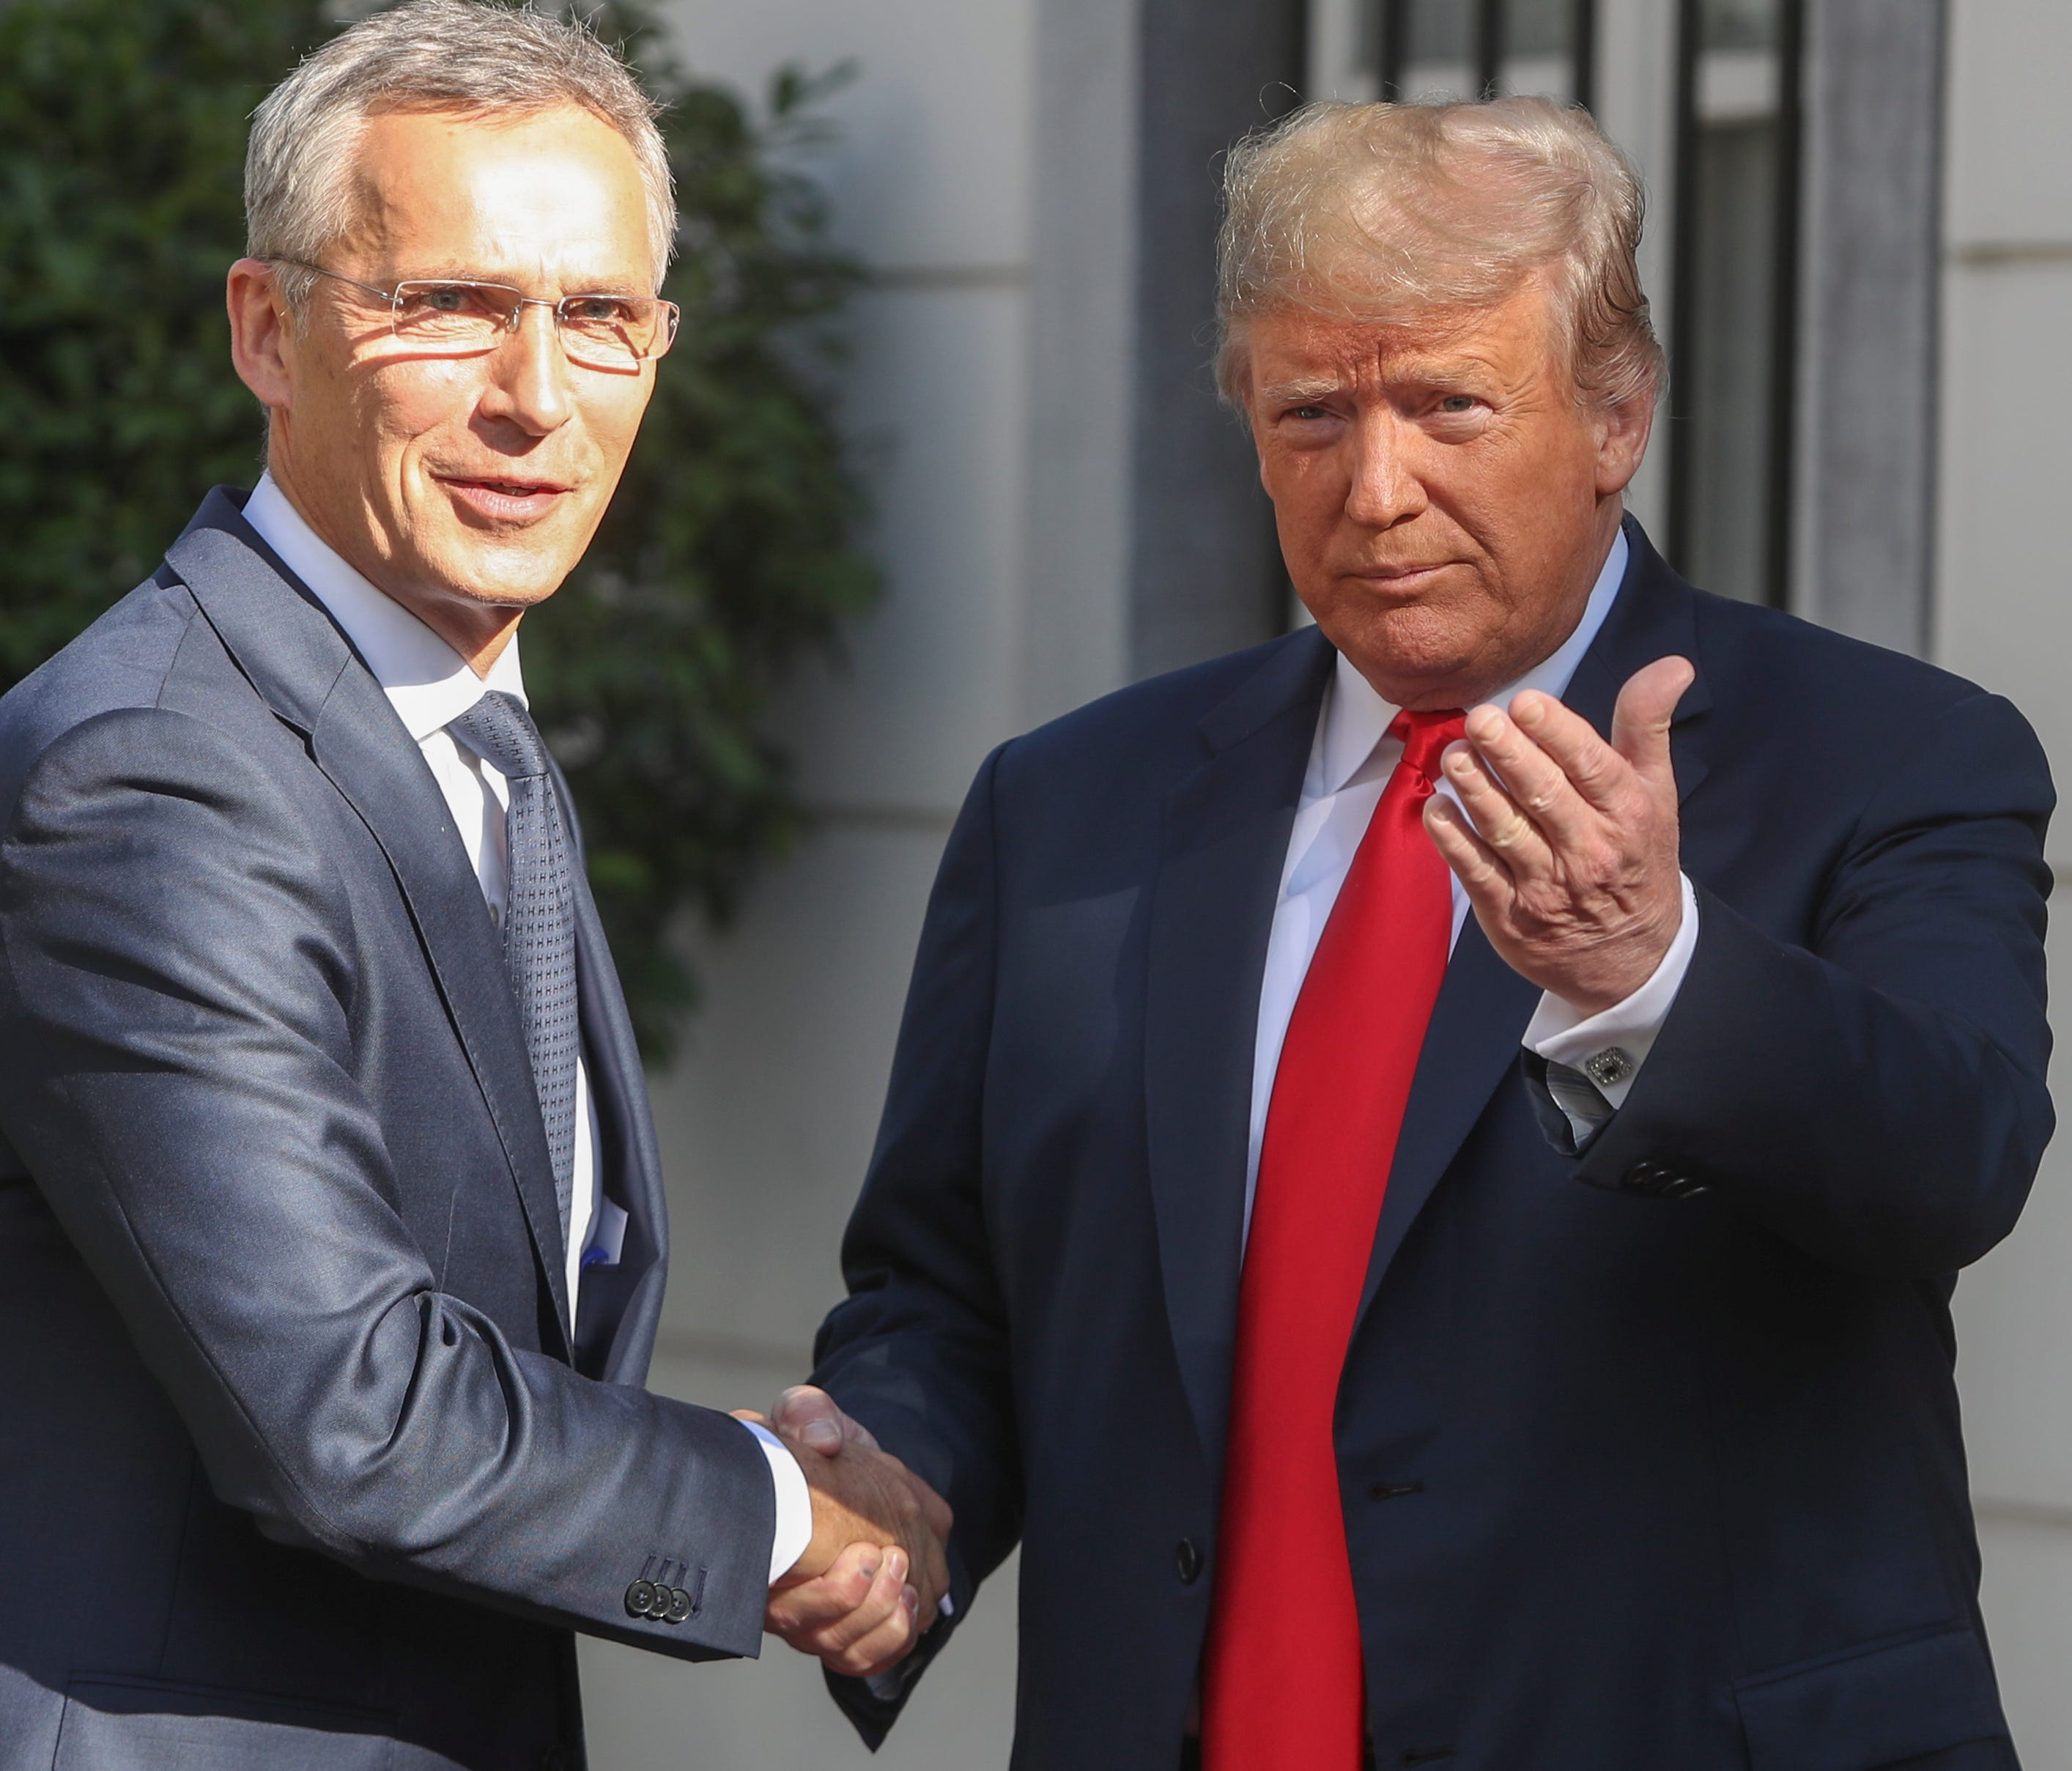 NATO Secretary General Jens Stoltenberg (left) and President Donald Trump meet ahead of a NATO Summit at the US Embassy in Brussels, Belgium.